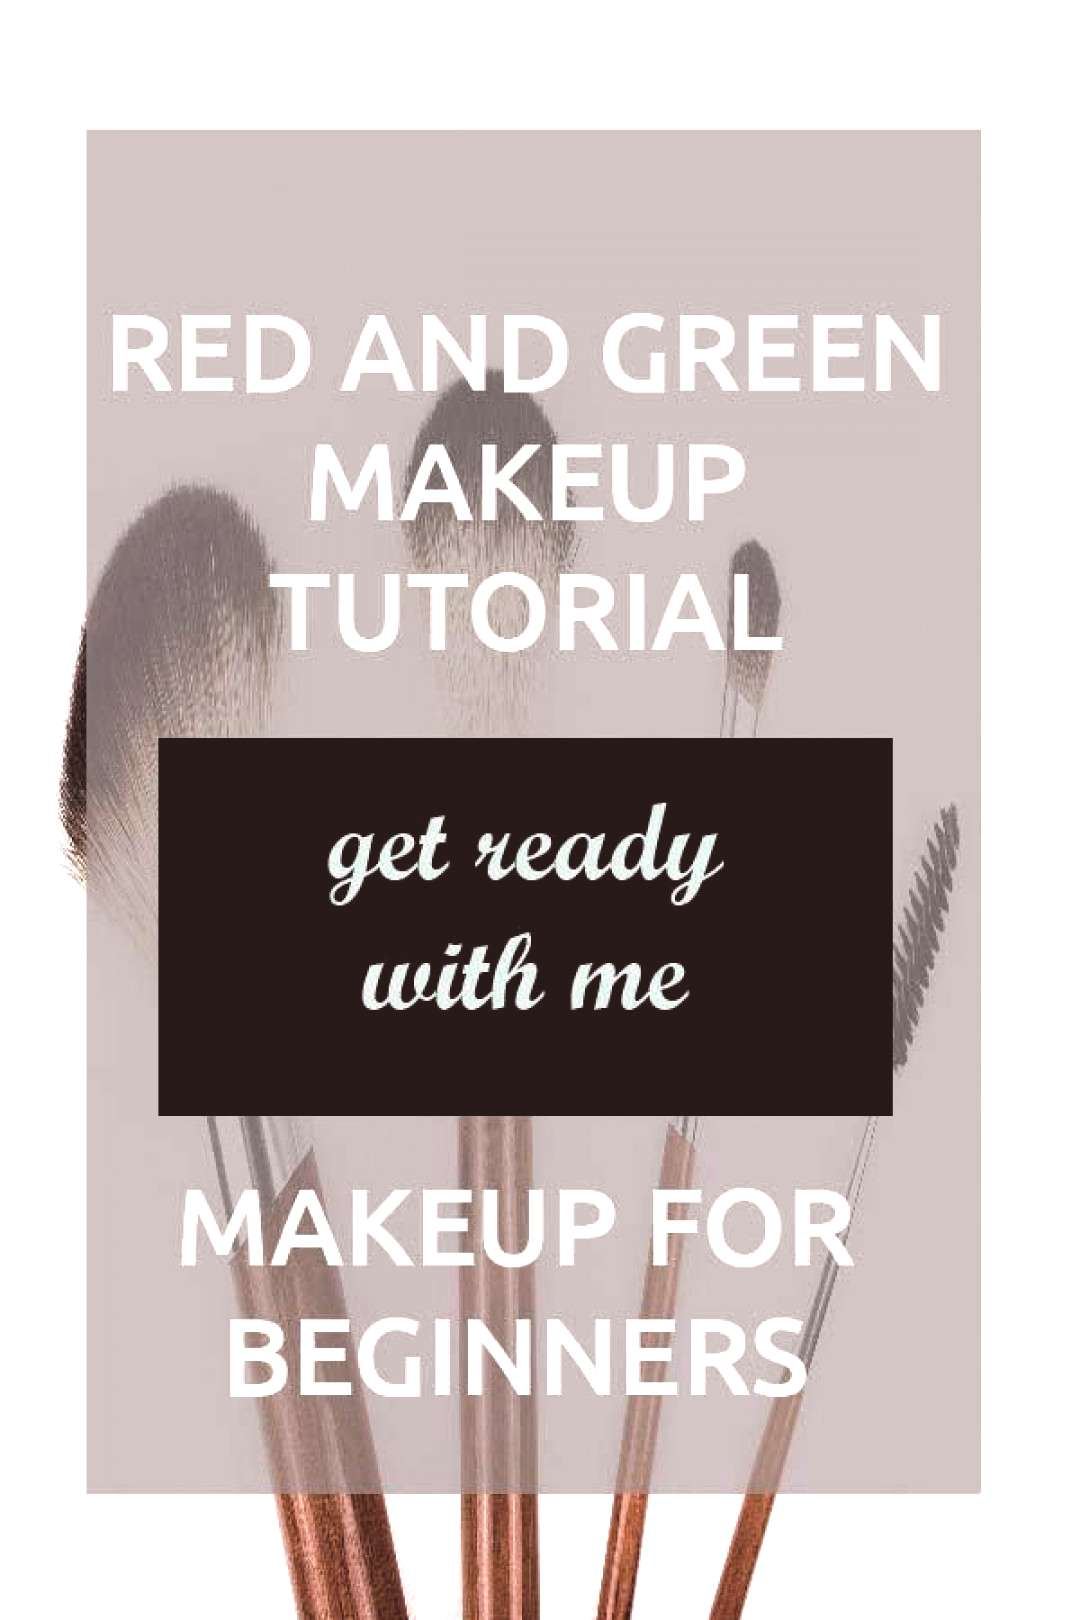 Step By Step Colorful Makeup Tutorial Video For Beginners Including Foundation Beginners